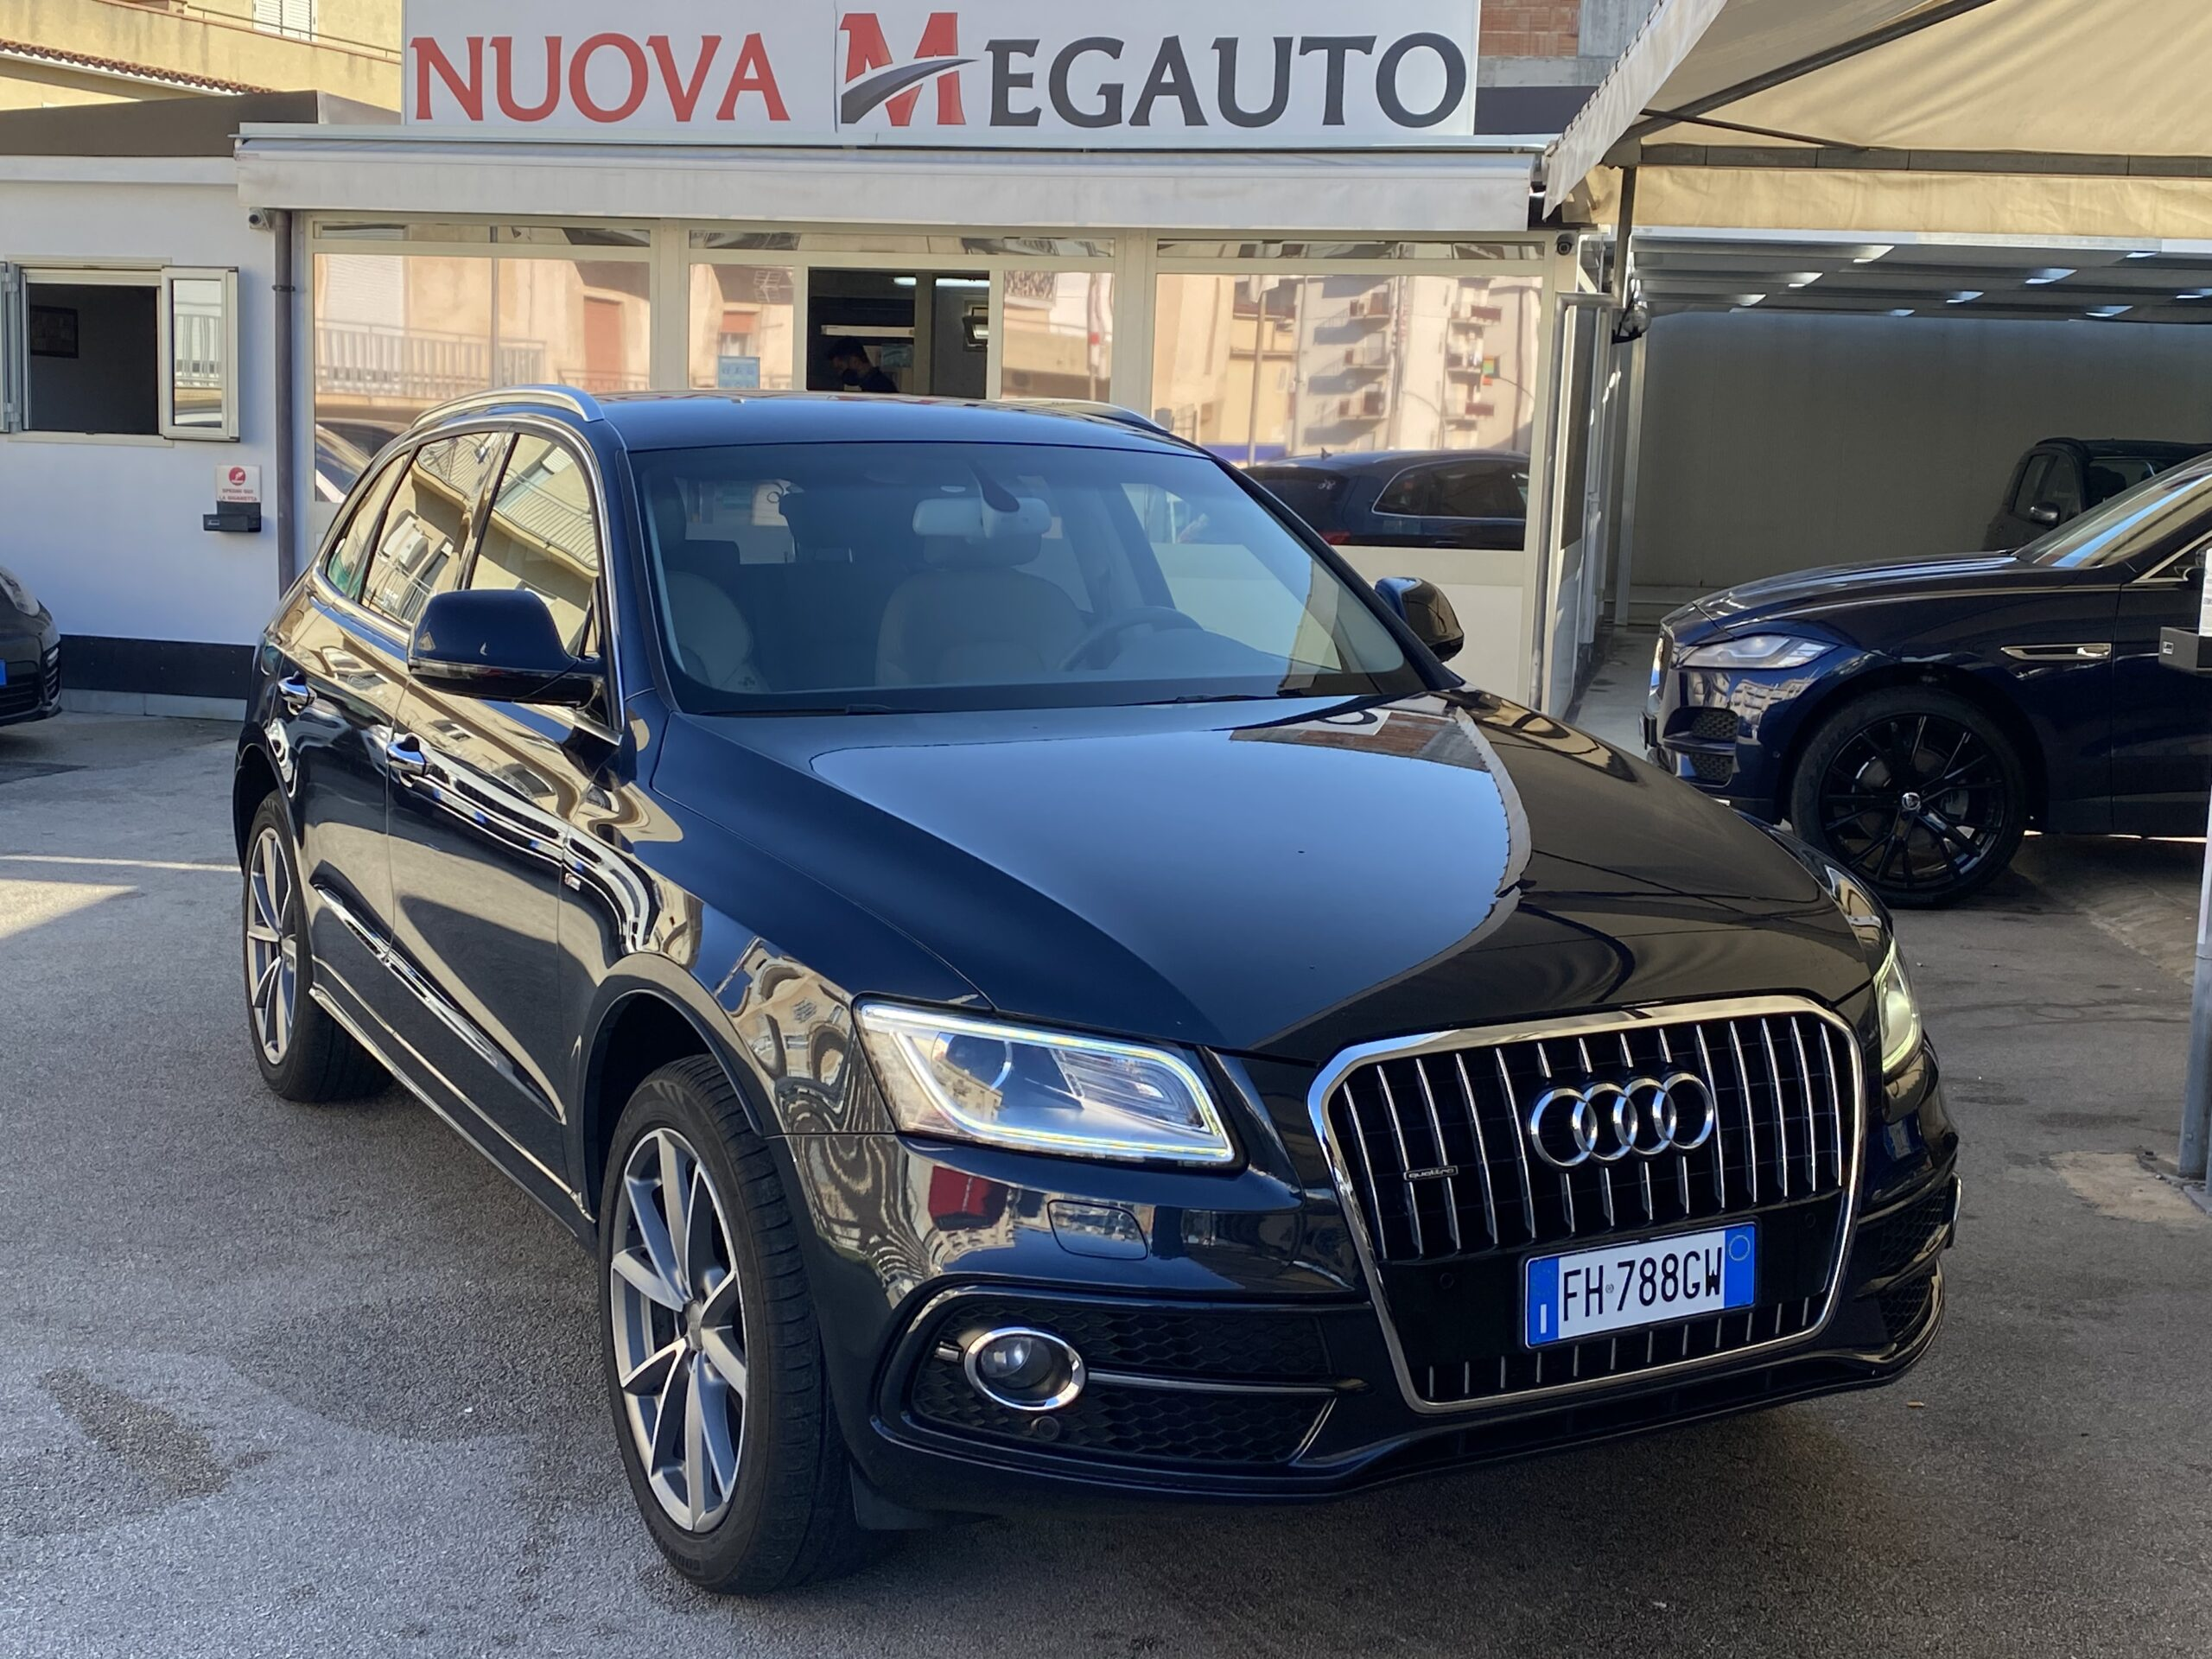 Audi Q5 2.0 TDI 190 CV S-line Quattro Advanced Plus